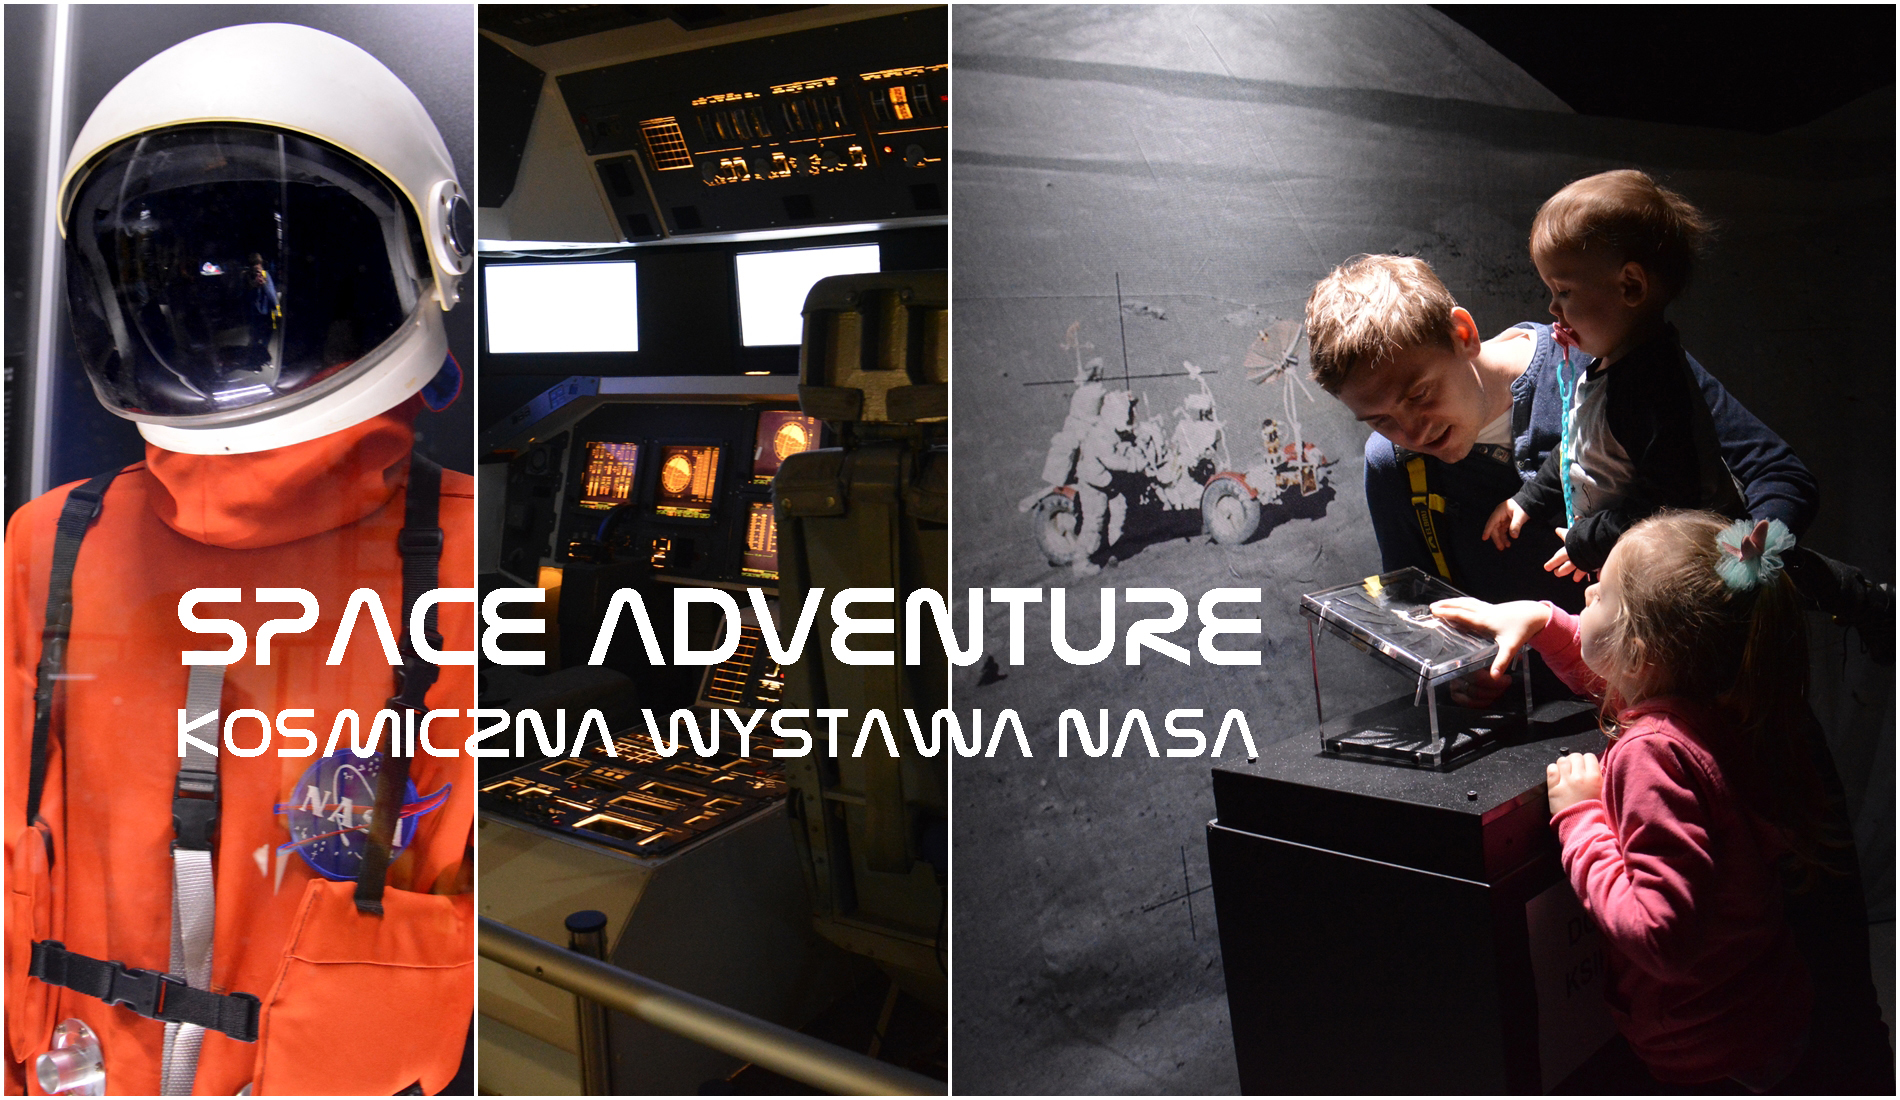 NASA Space adventure we Wroclawiu